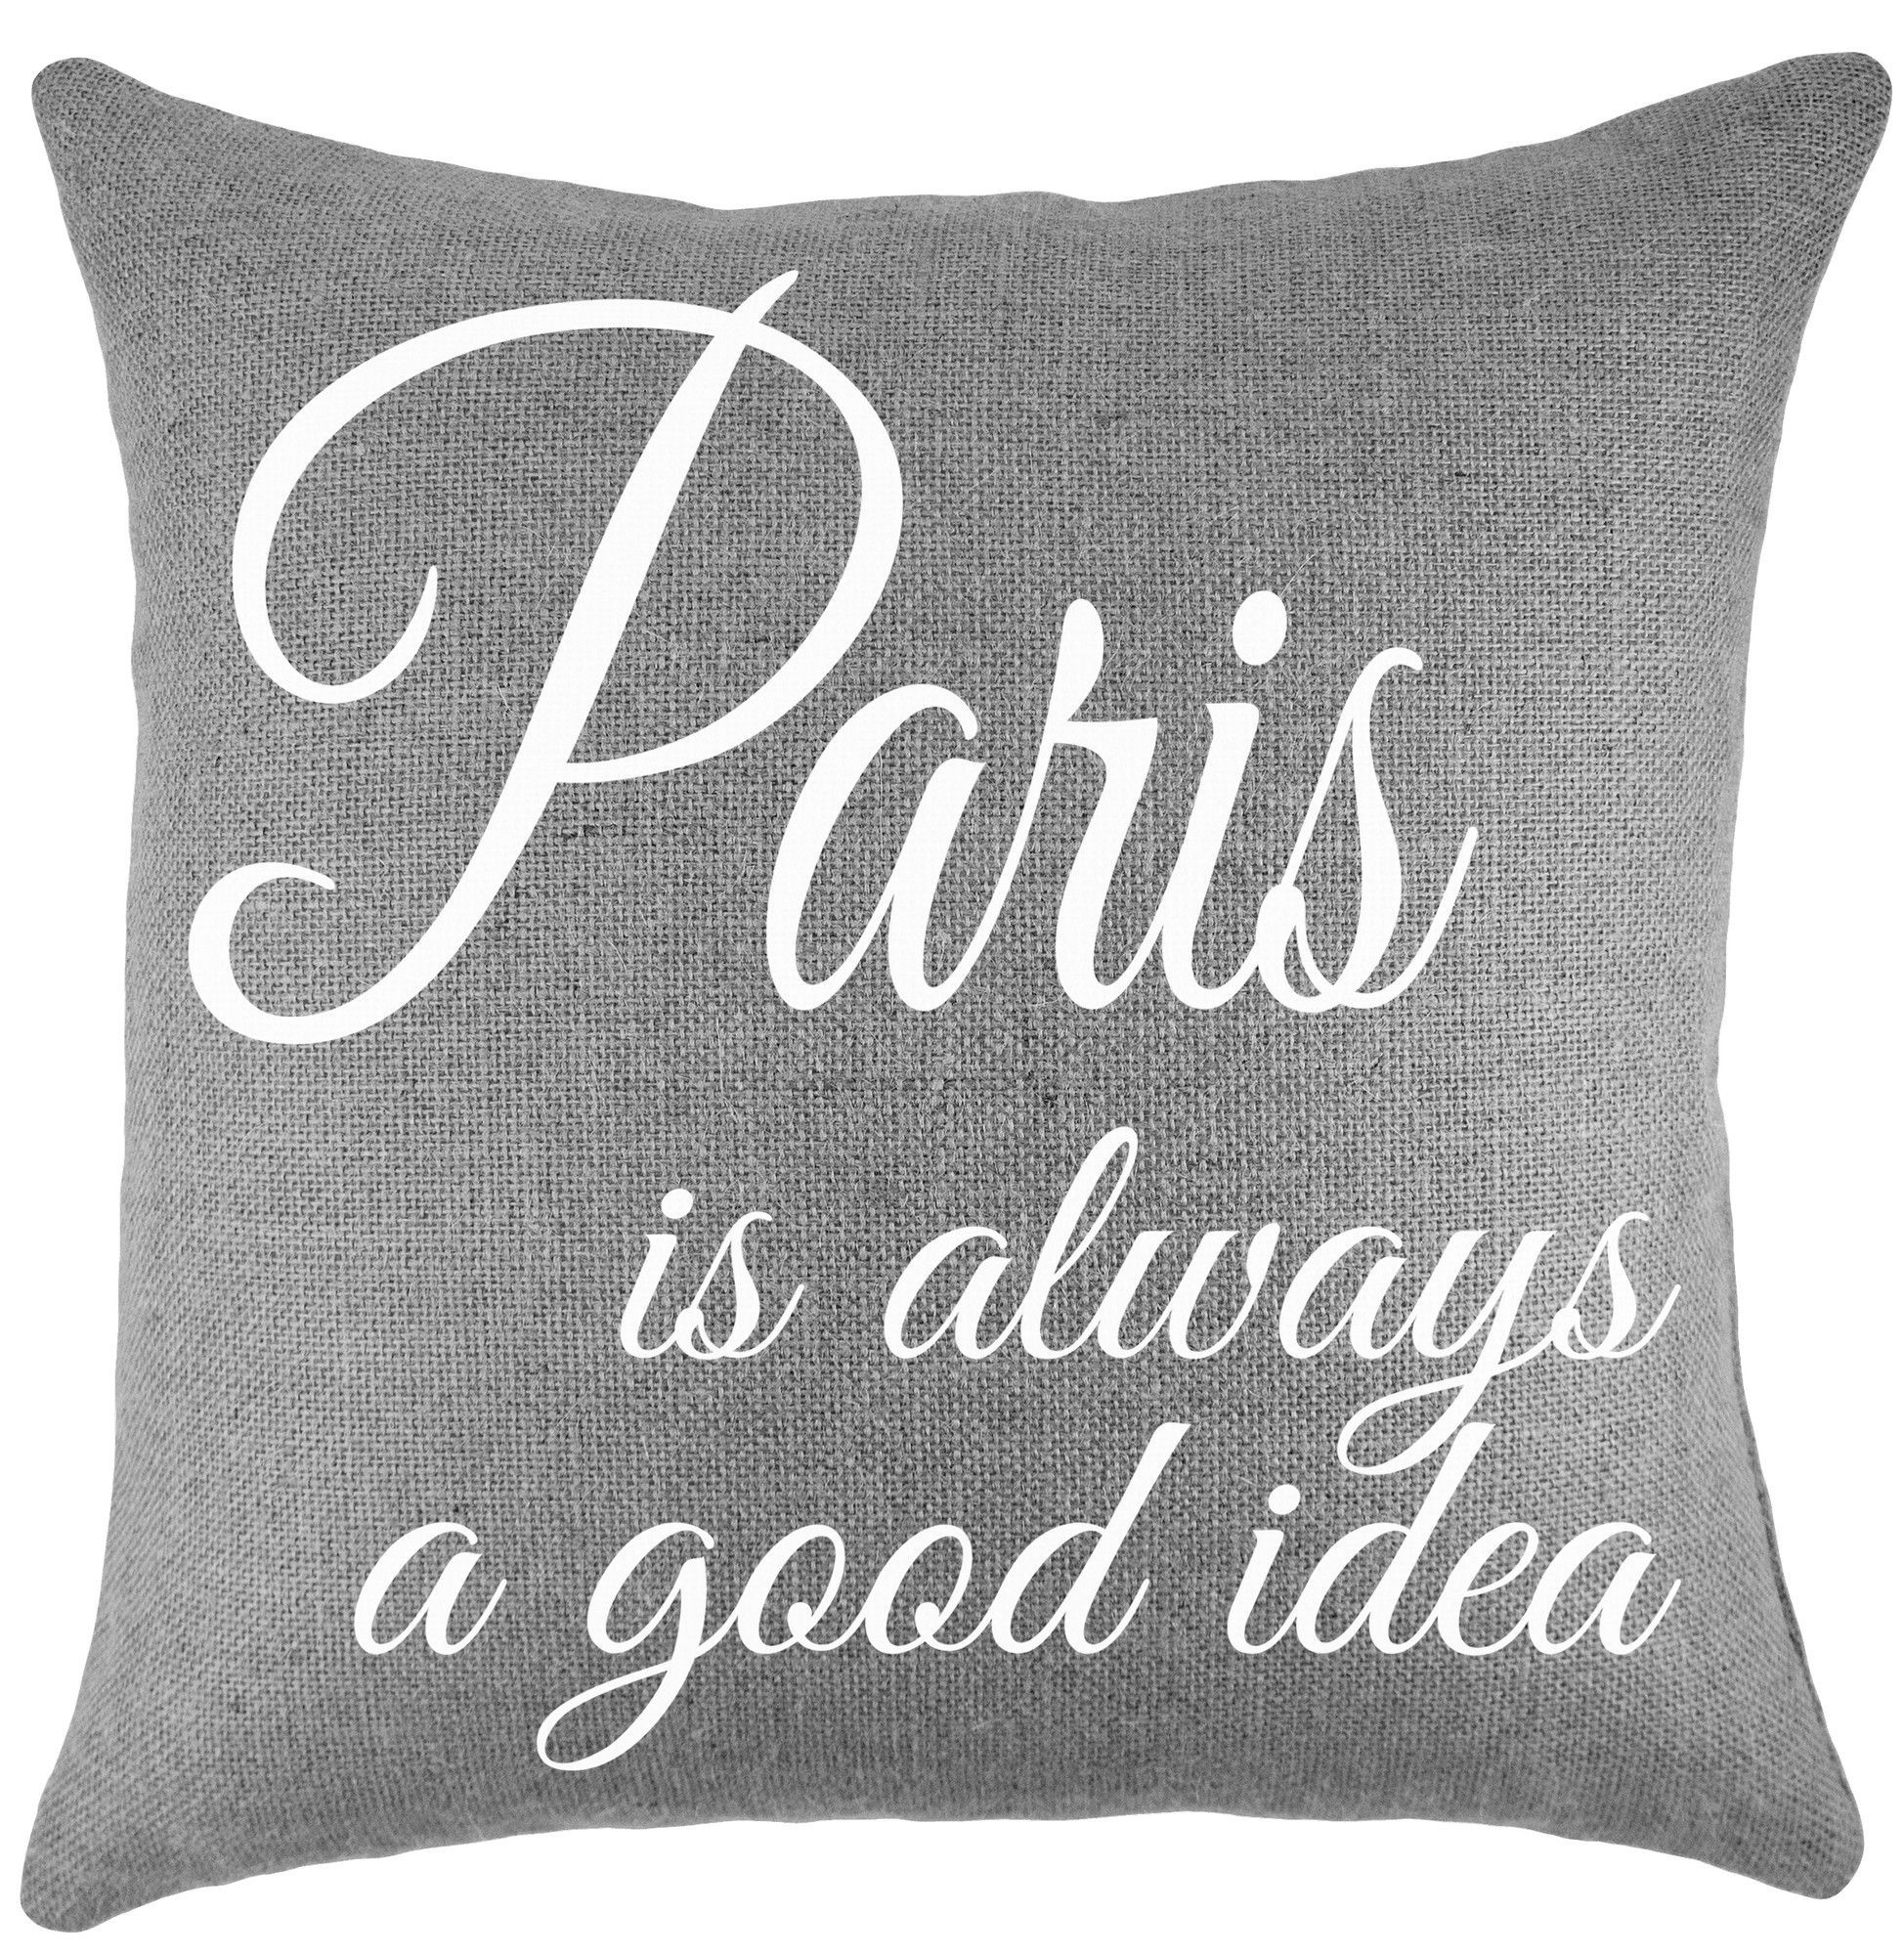 Paris Is Always A Good Idea Burlap Throw Pillow Ideas Pillows